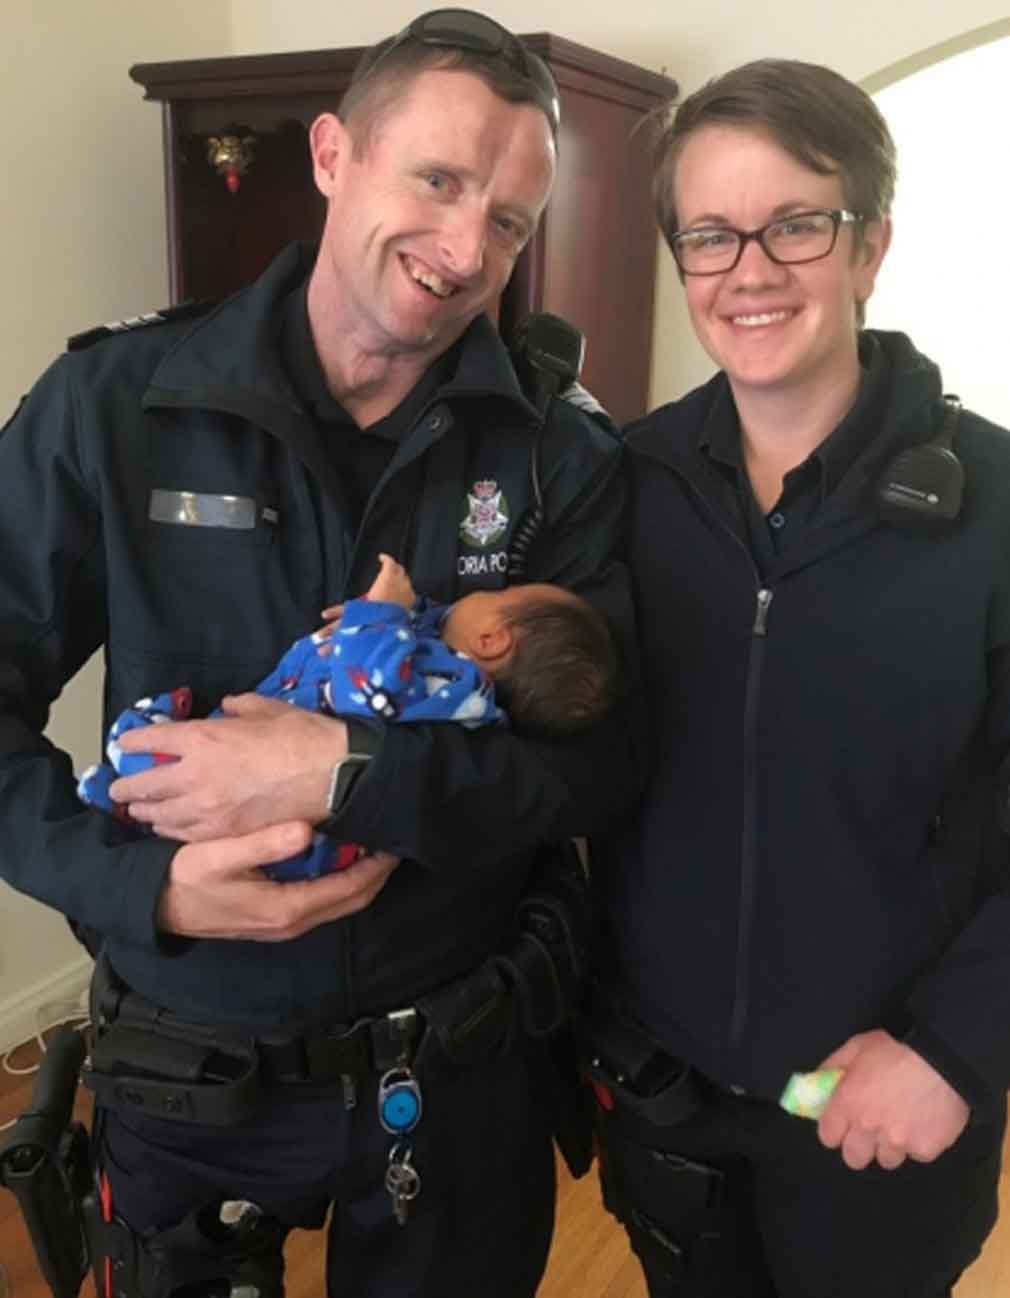 Police officers help save four-week-old baby who stopped breathing